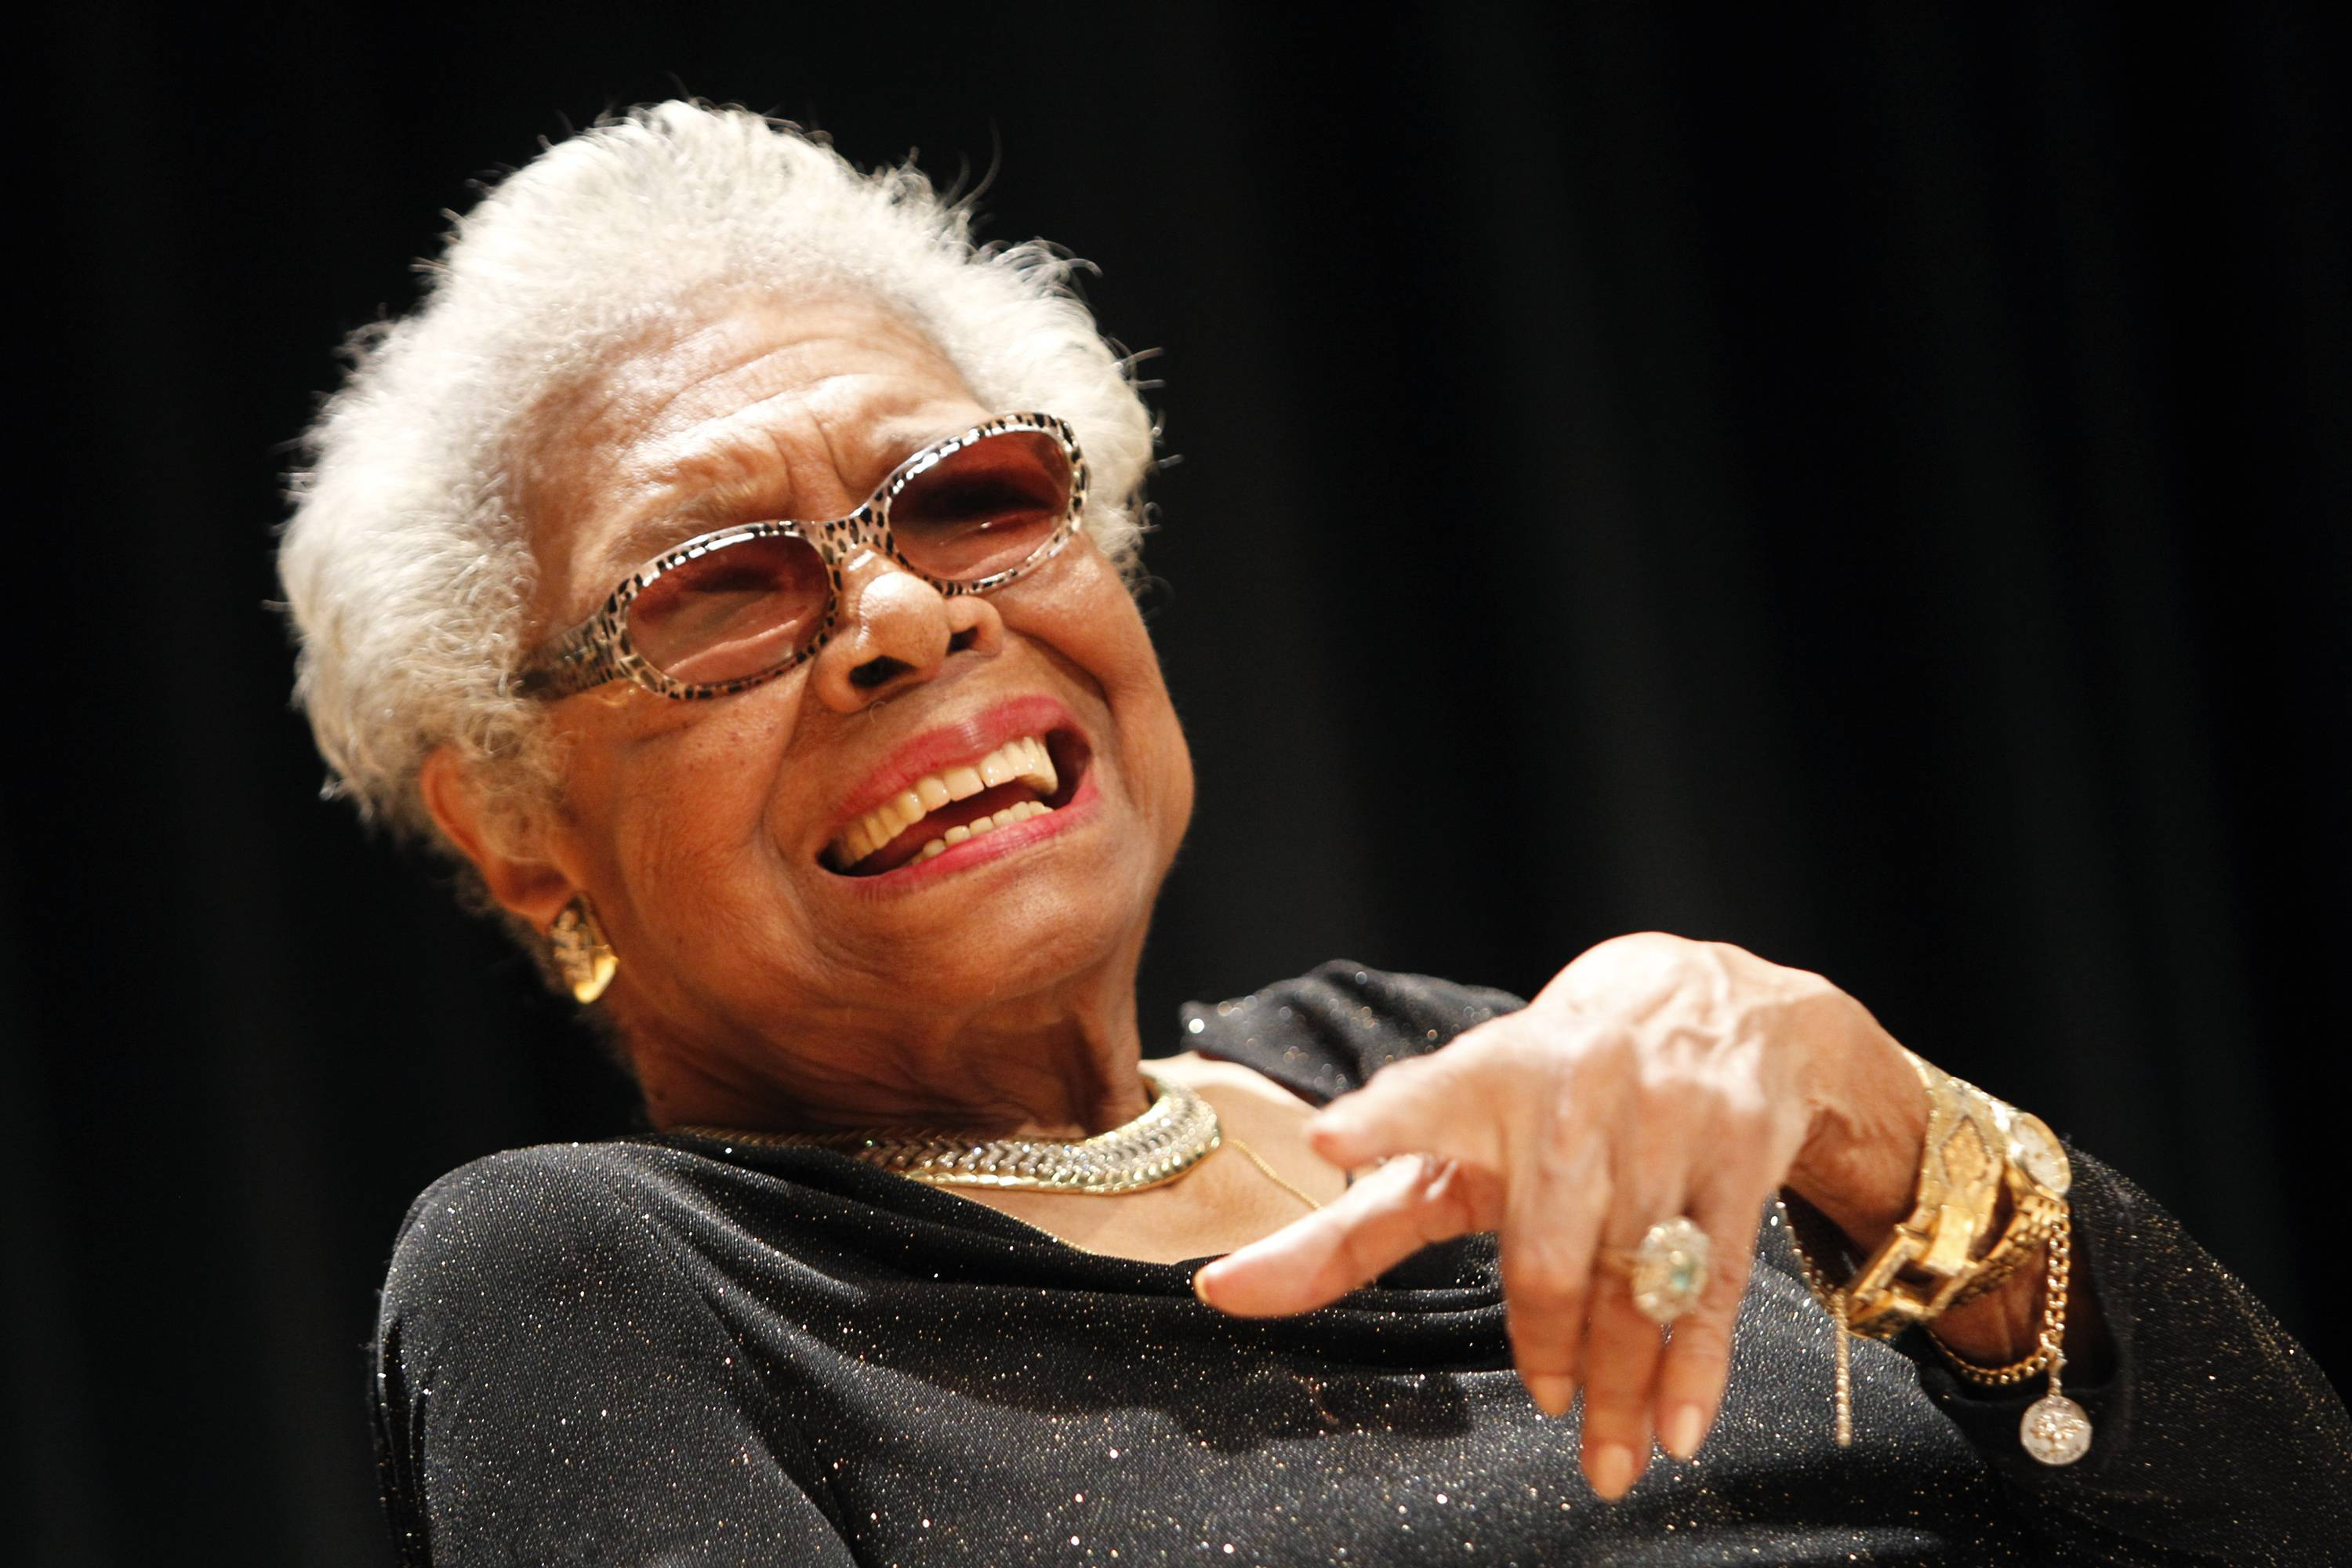 Maya Angelou answers questions at her portrait unveiling at the Smithsonian's National Portrait Gallery on Saturday, April 5, 2014 in Washington, DC.